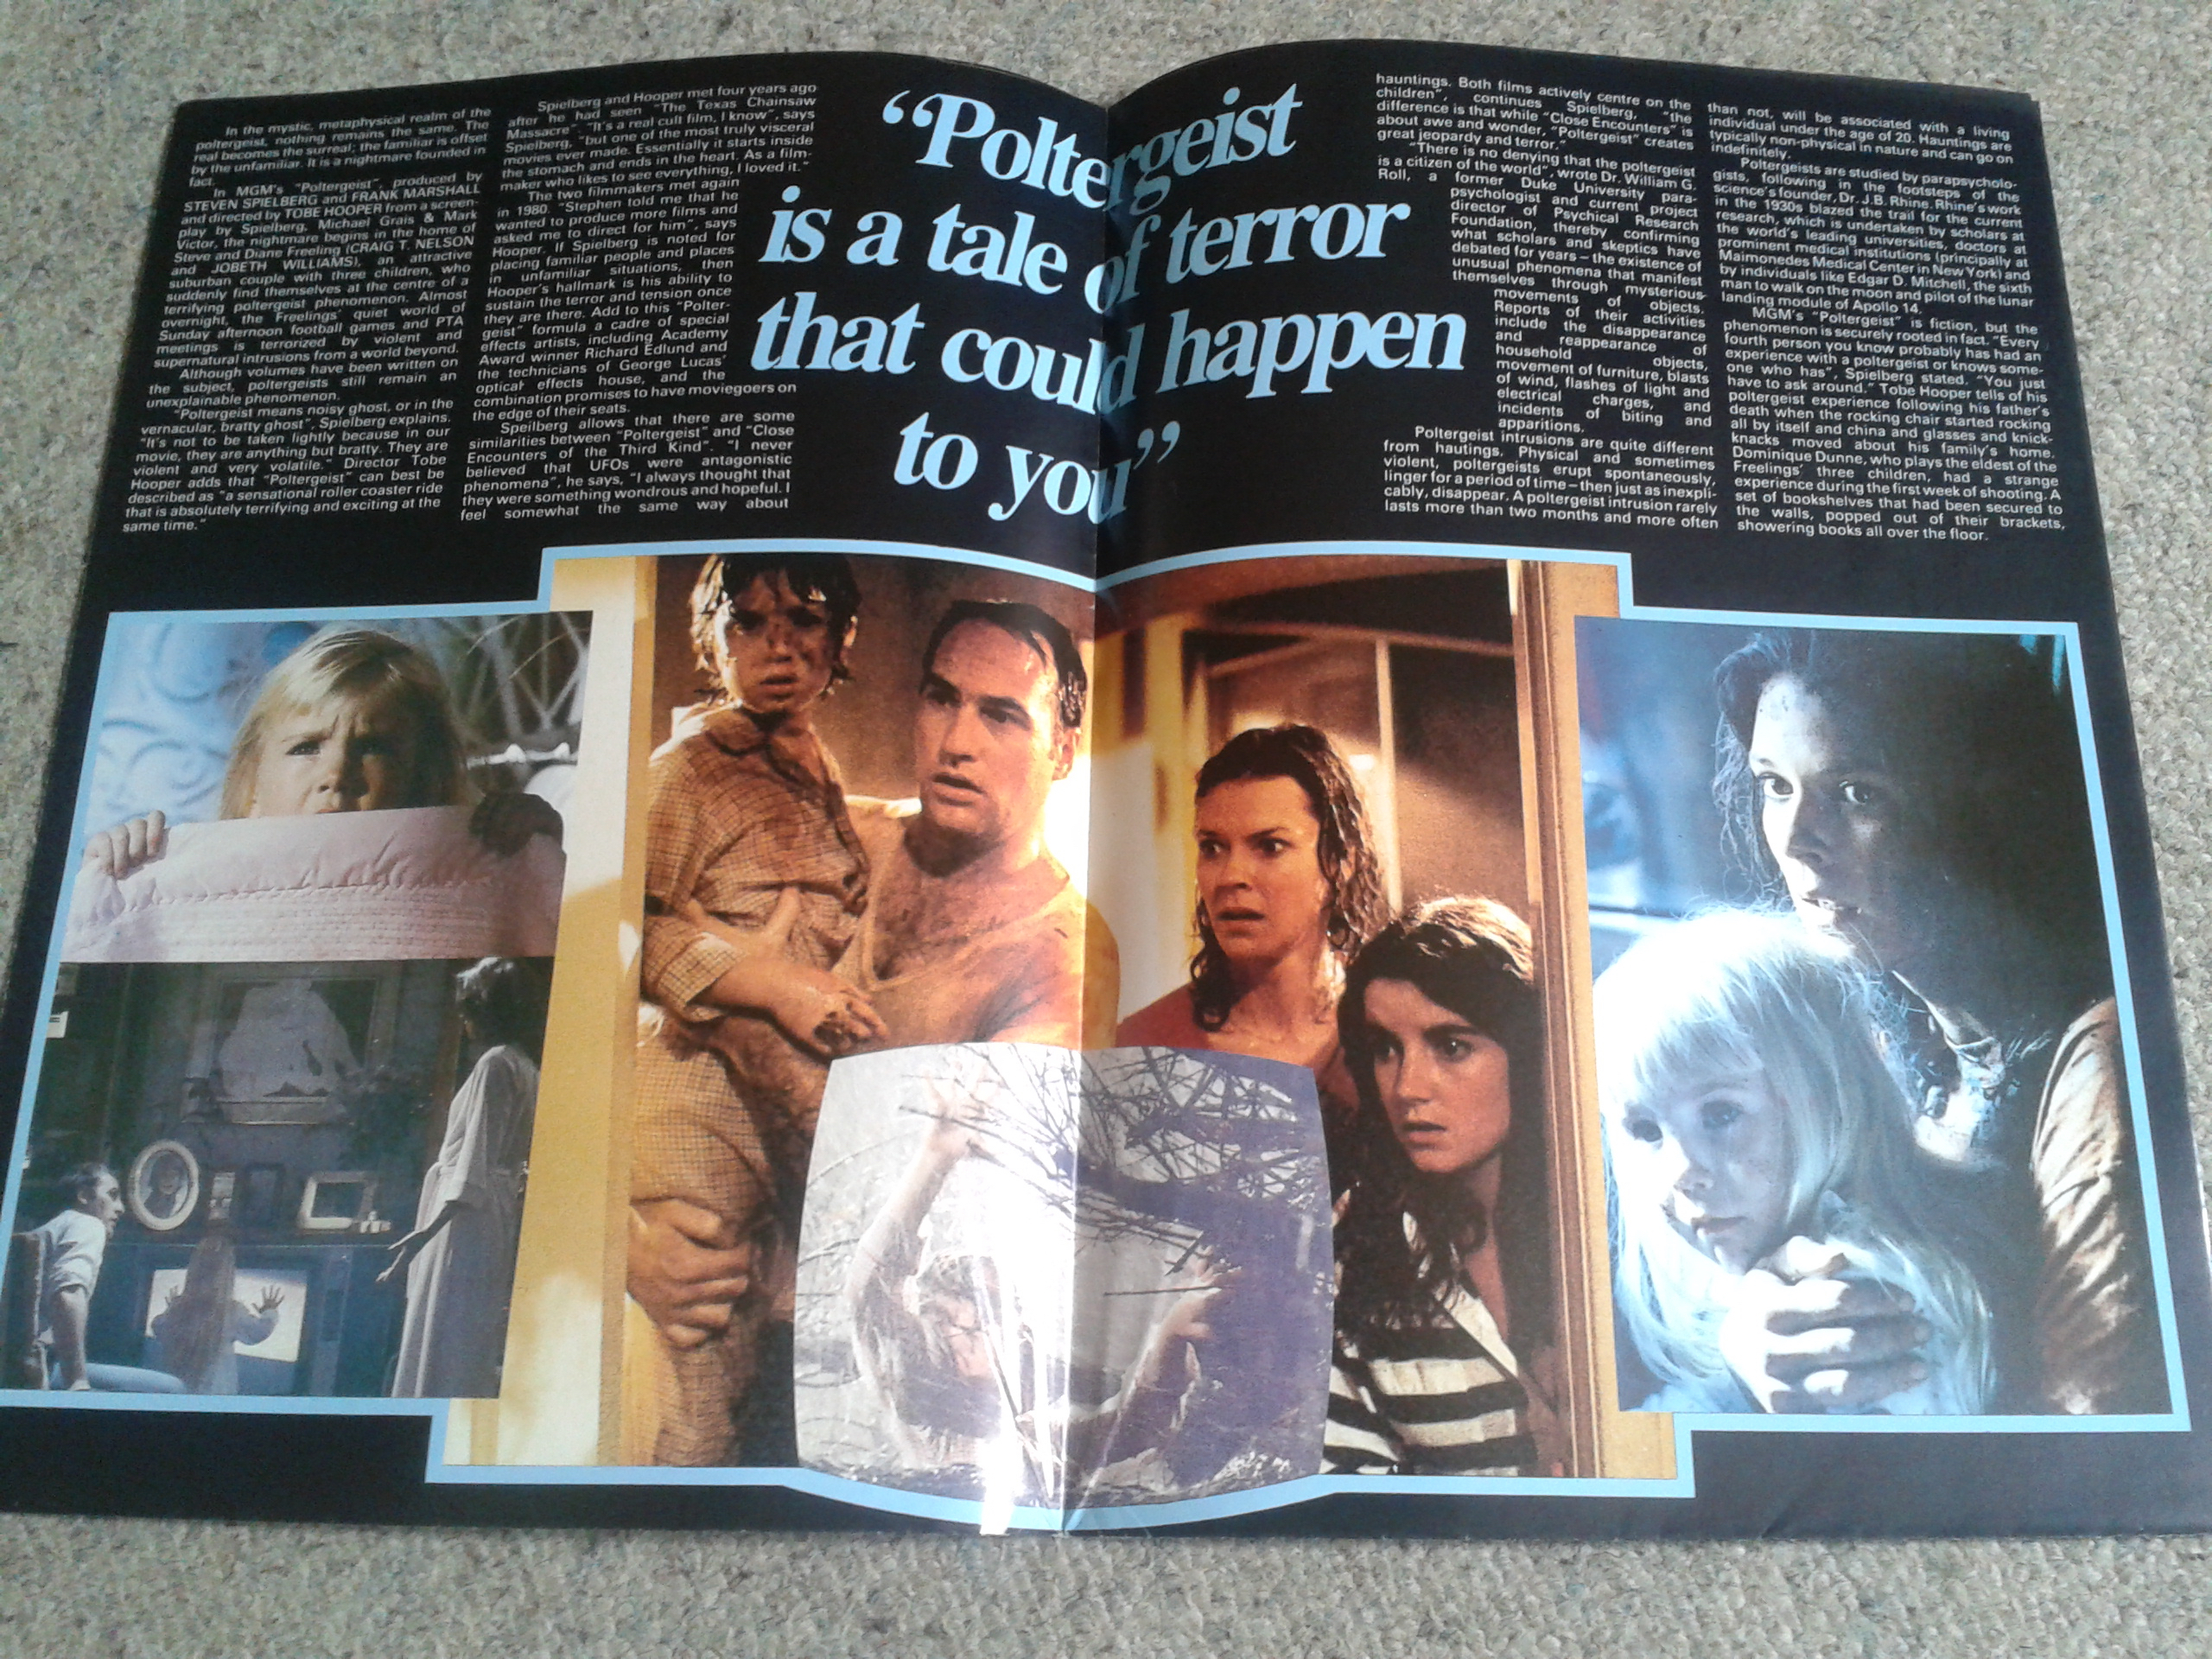 Poltergeist Poster Magazine Inside First Page